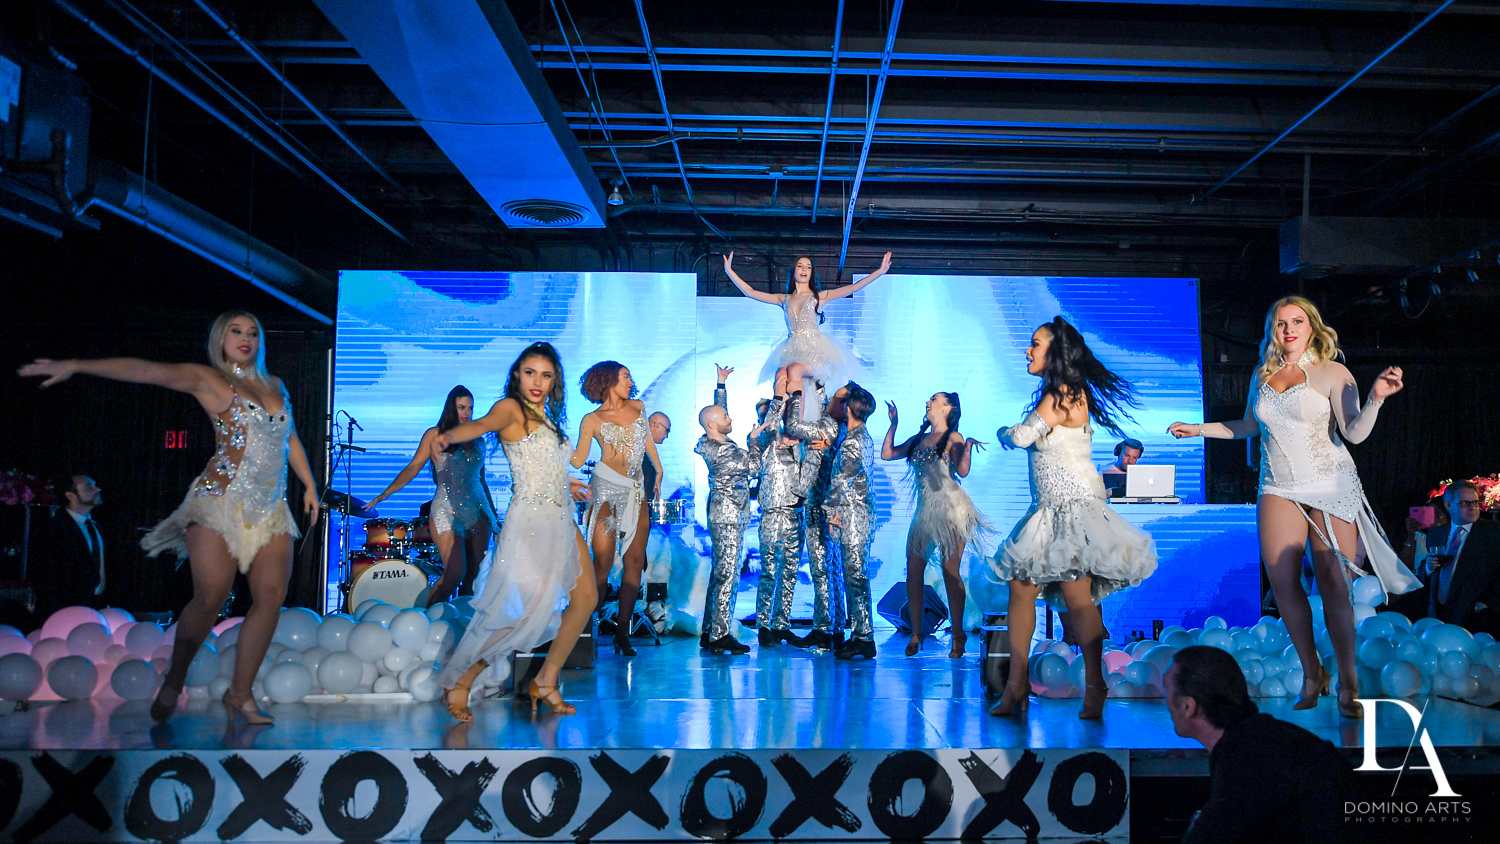 dance performance at Fashion Theme Bat Mitzvah at Gallery of Amazing Things by Domino Arts Photography